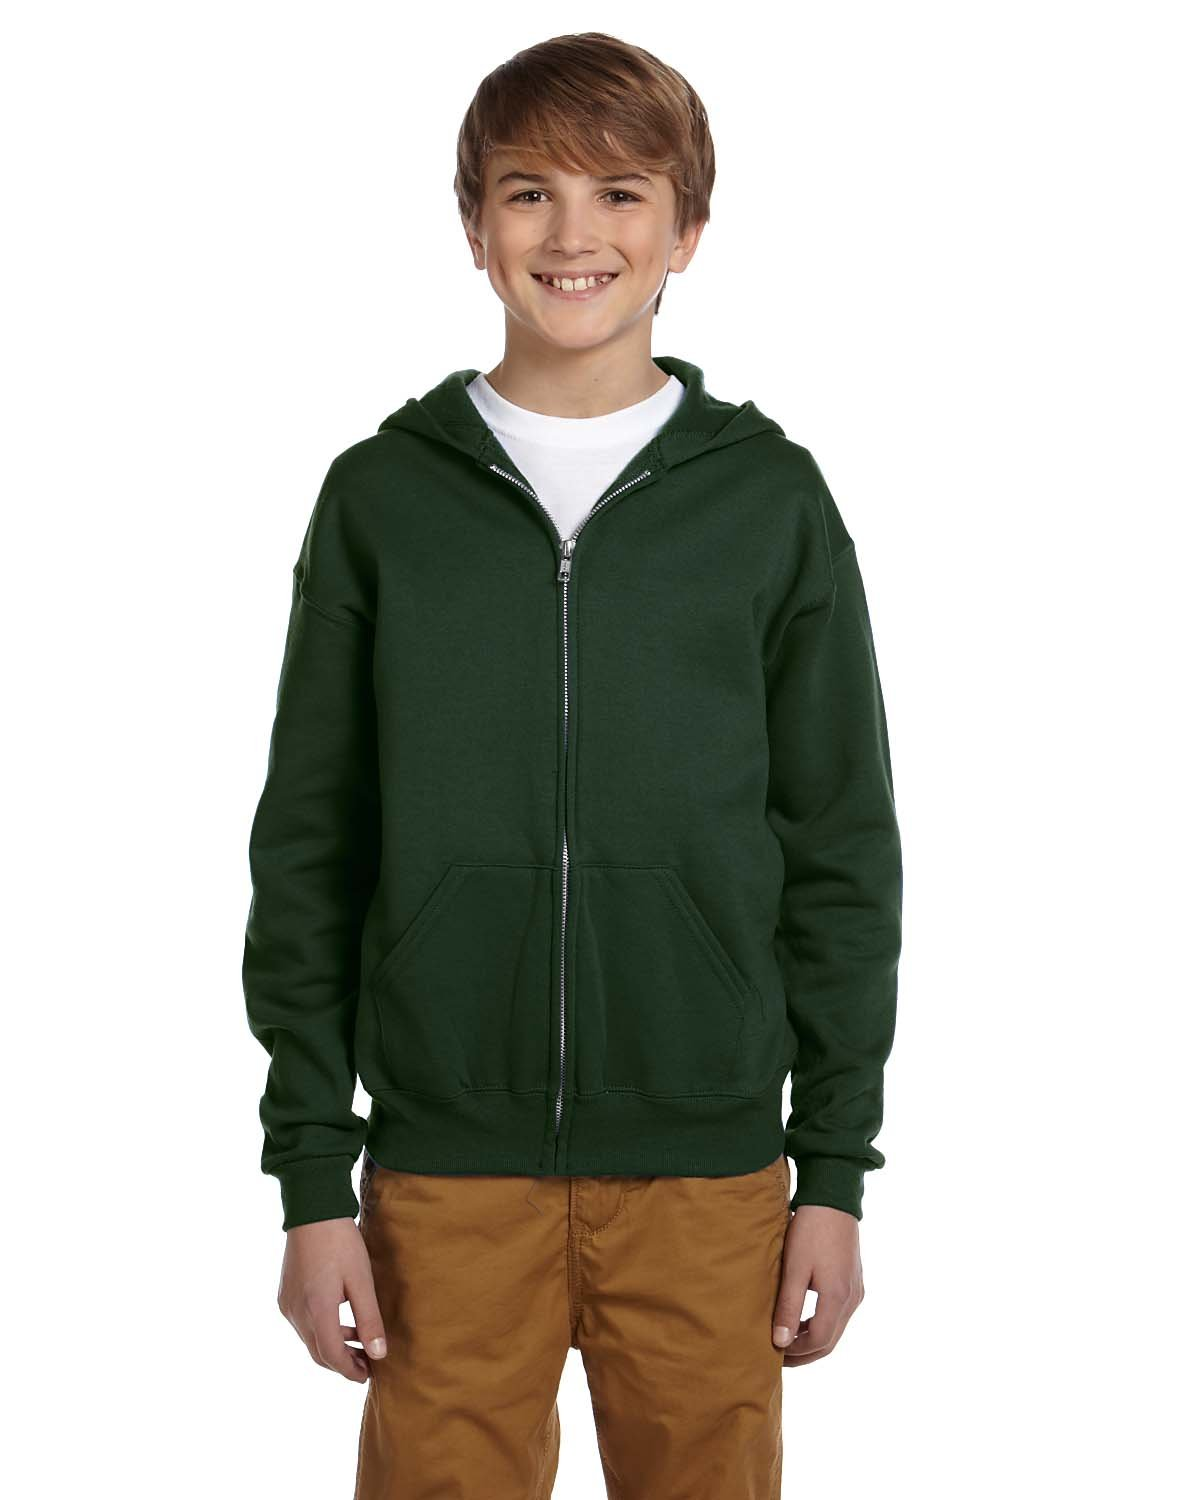 Jerzees Youth Nublend Full-Zip Hooded Sweatshirt, Frst Green, Medium